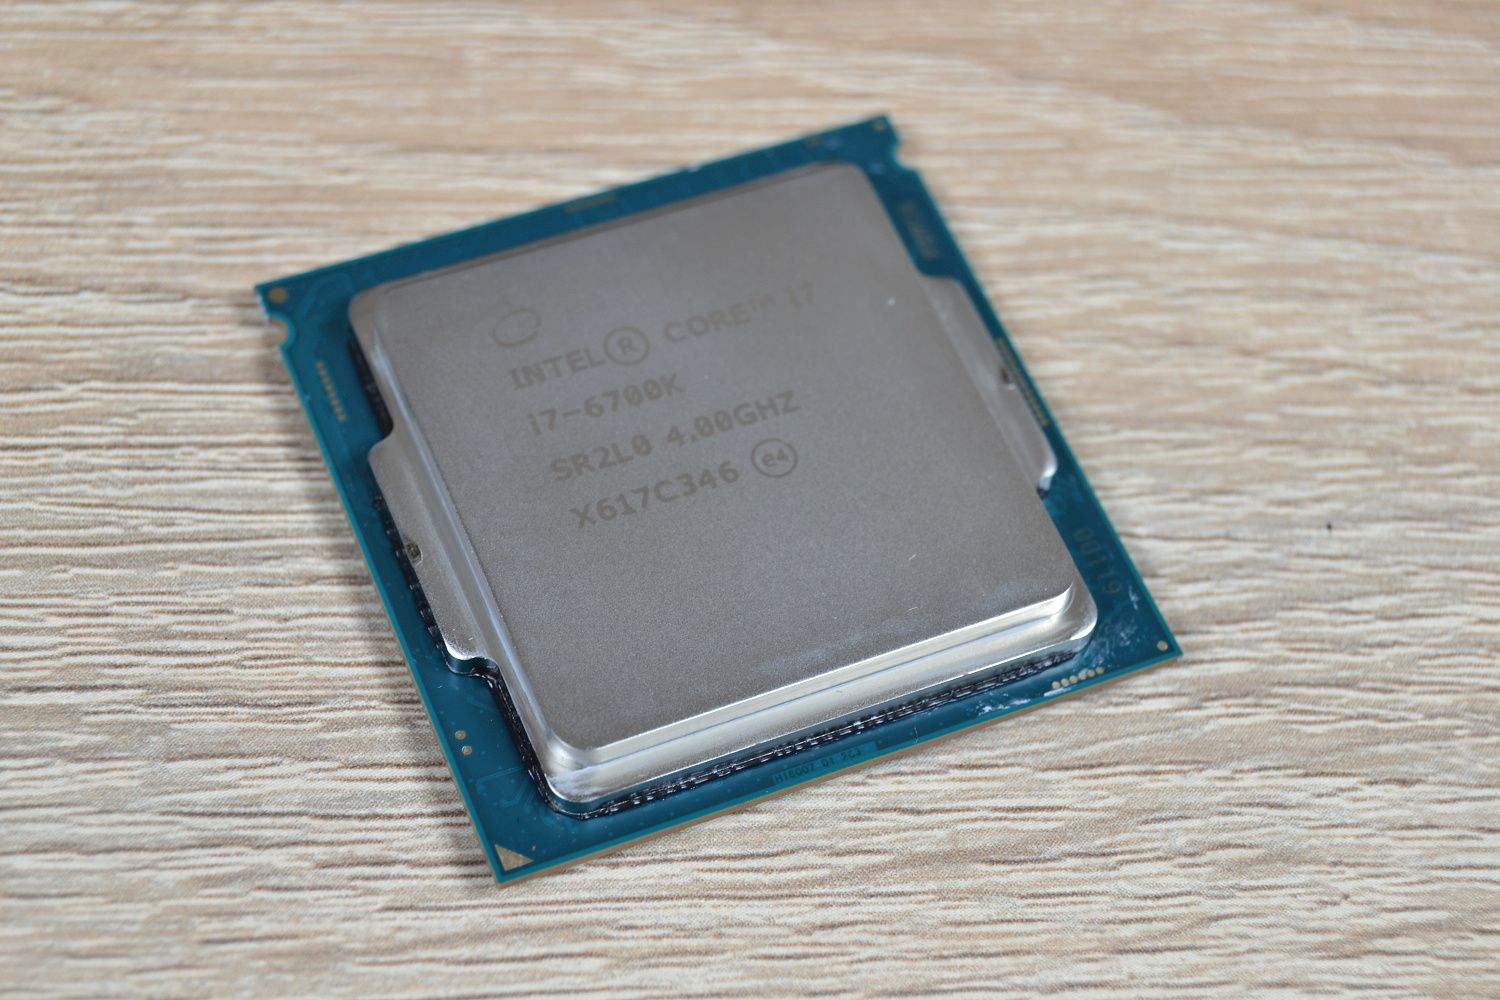 Intel PC 02 CPU